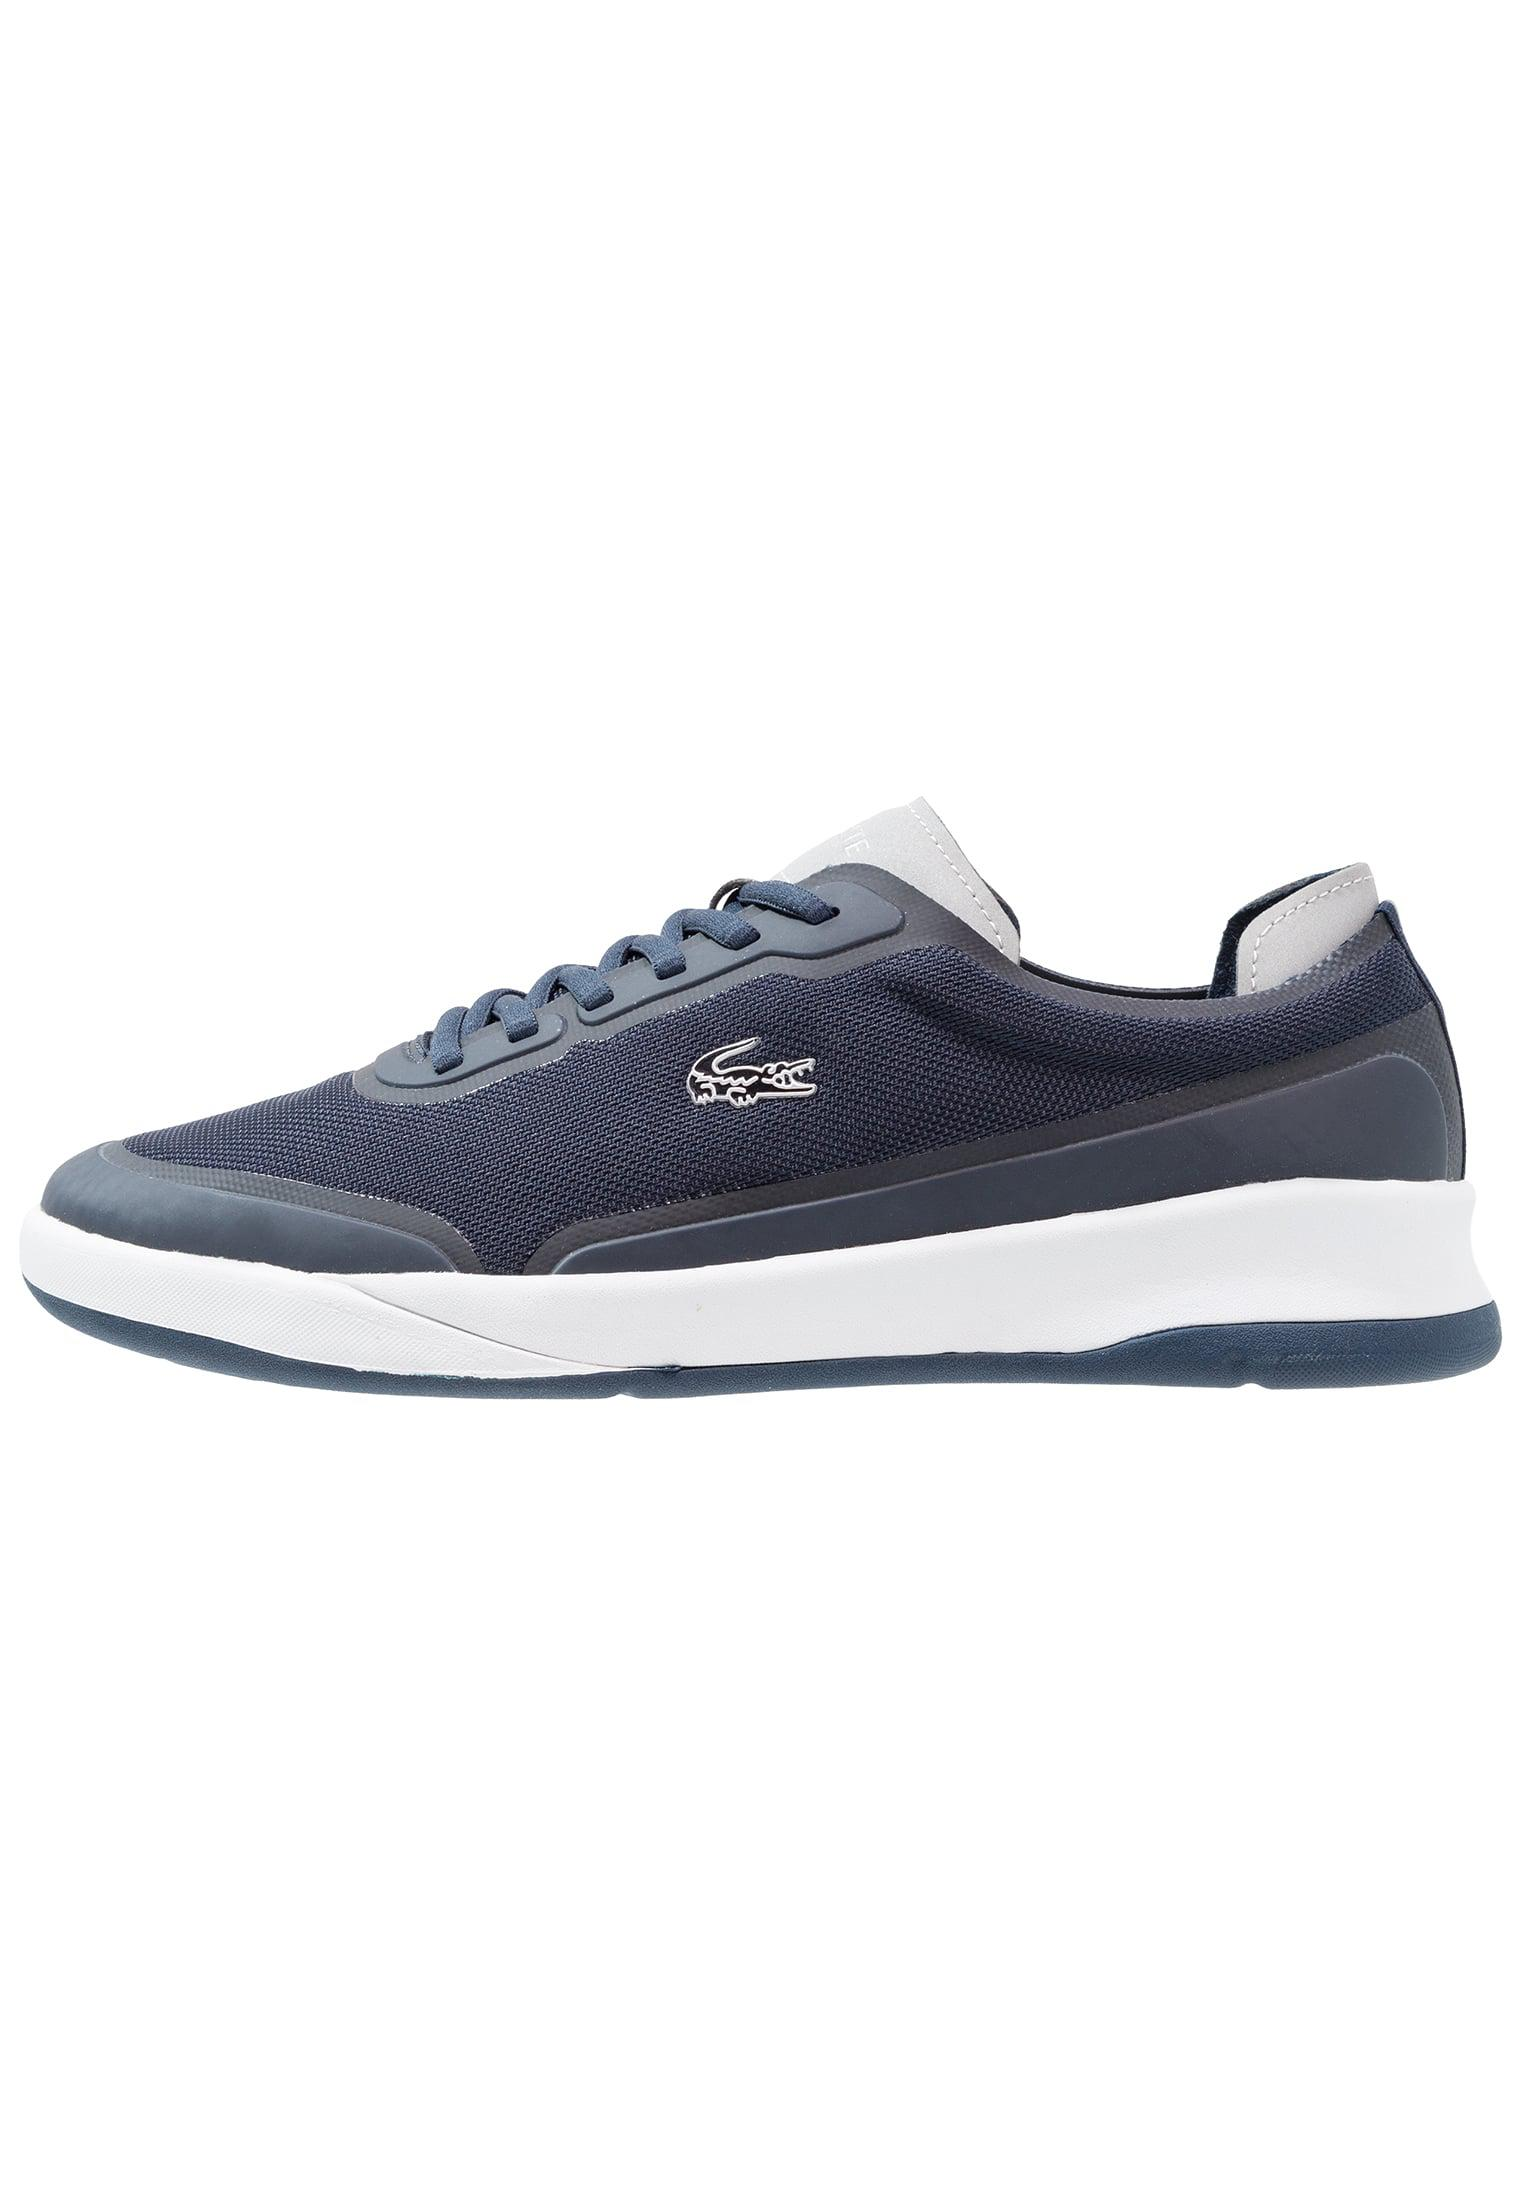 2c049820aca875 Lacoste Trainers in Blue for Men